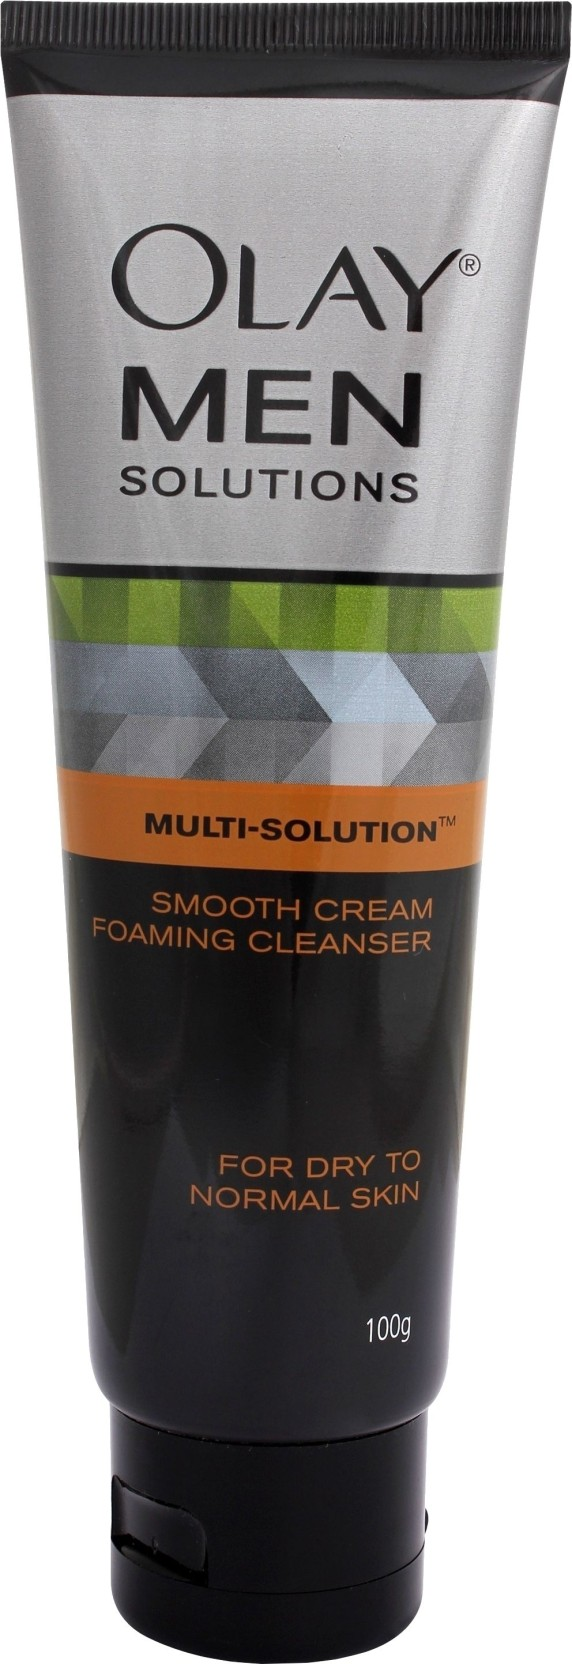 Olay Men Solutions Smooth Cream Foaming Cleanser Price In India Revitalising Cleansing Share